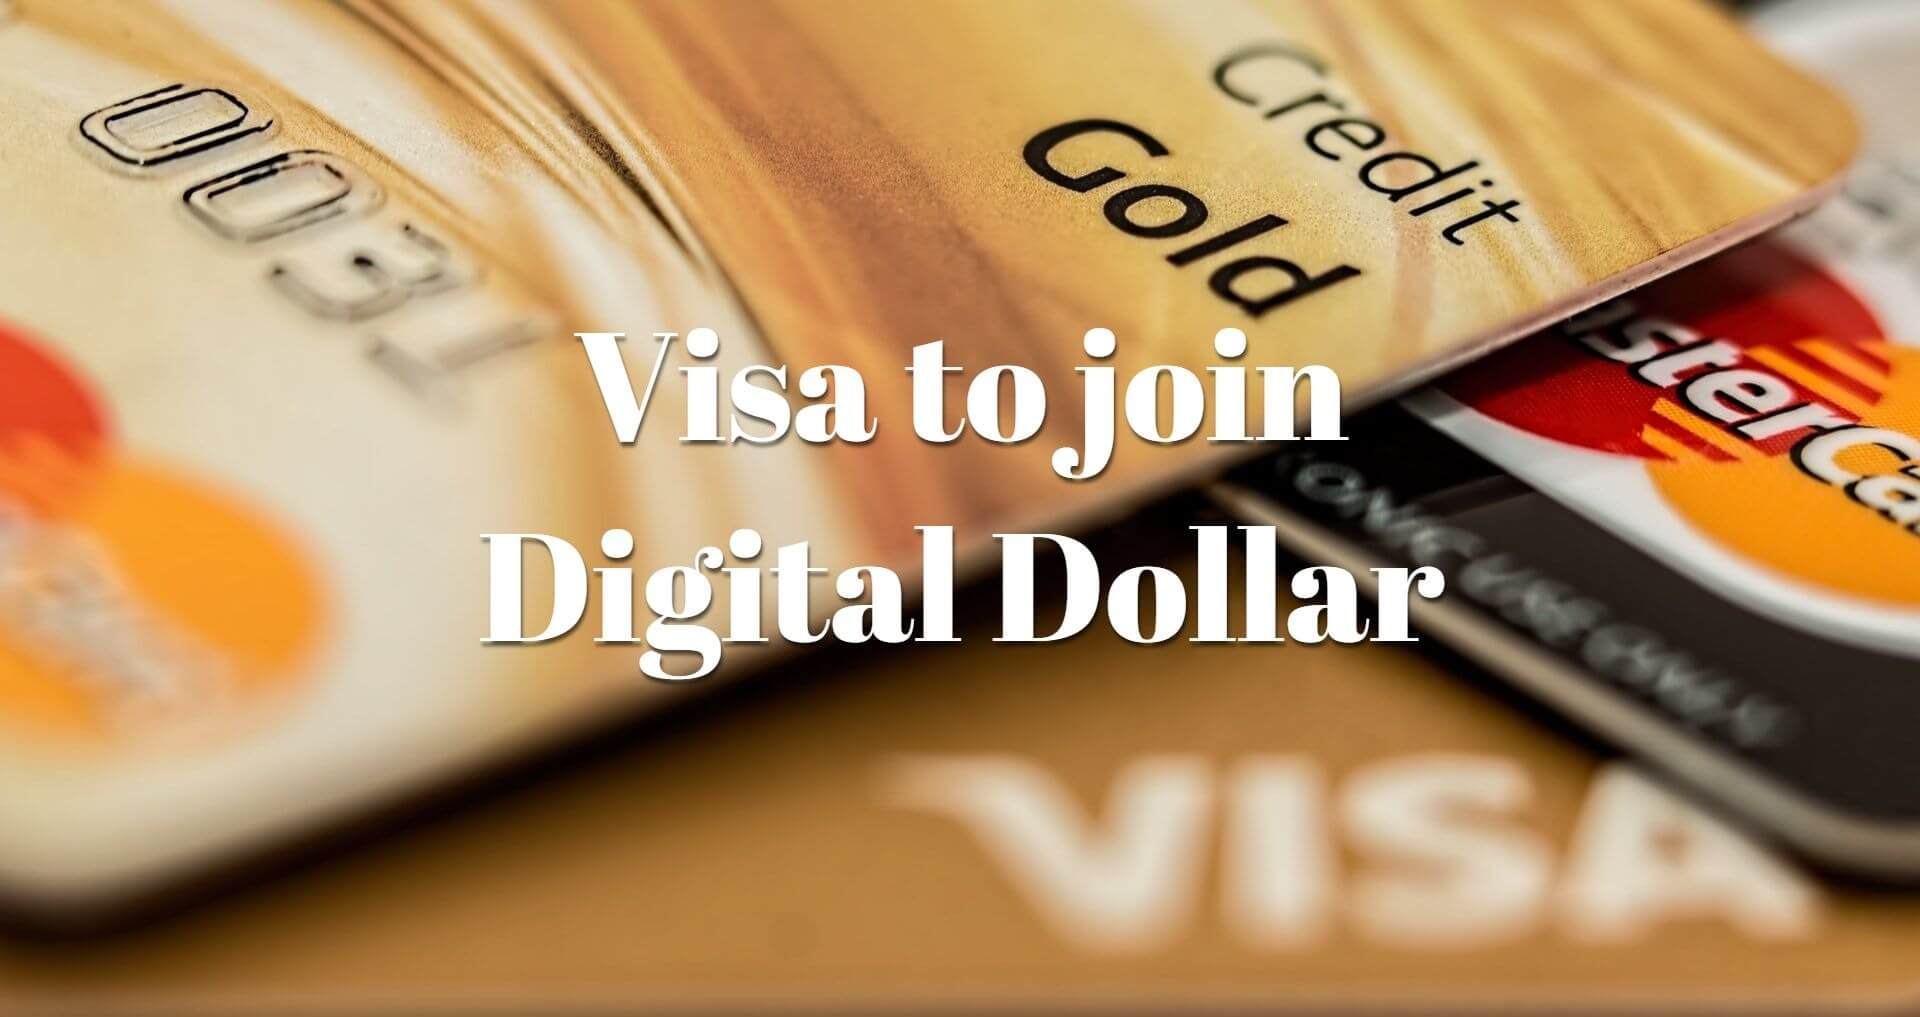 Visa joins digital dollar